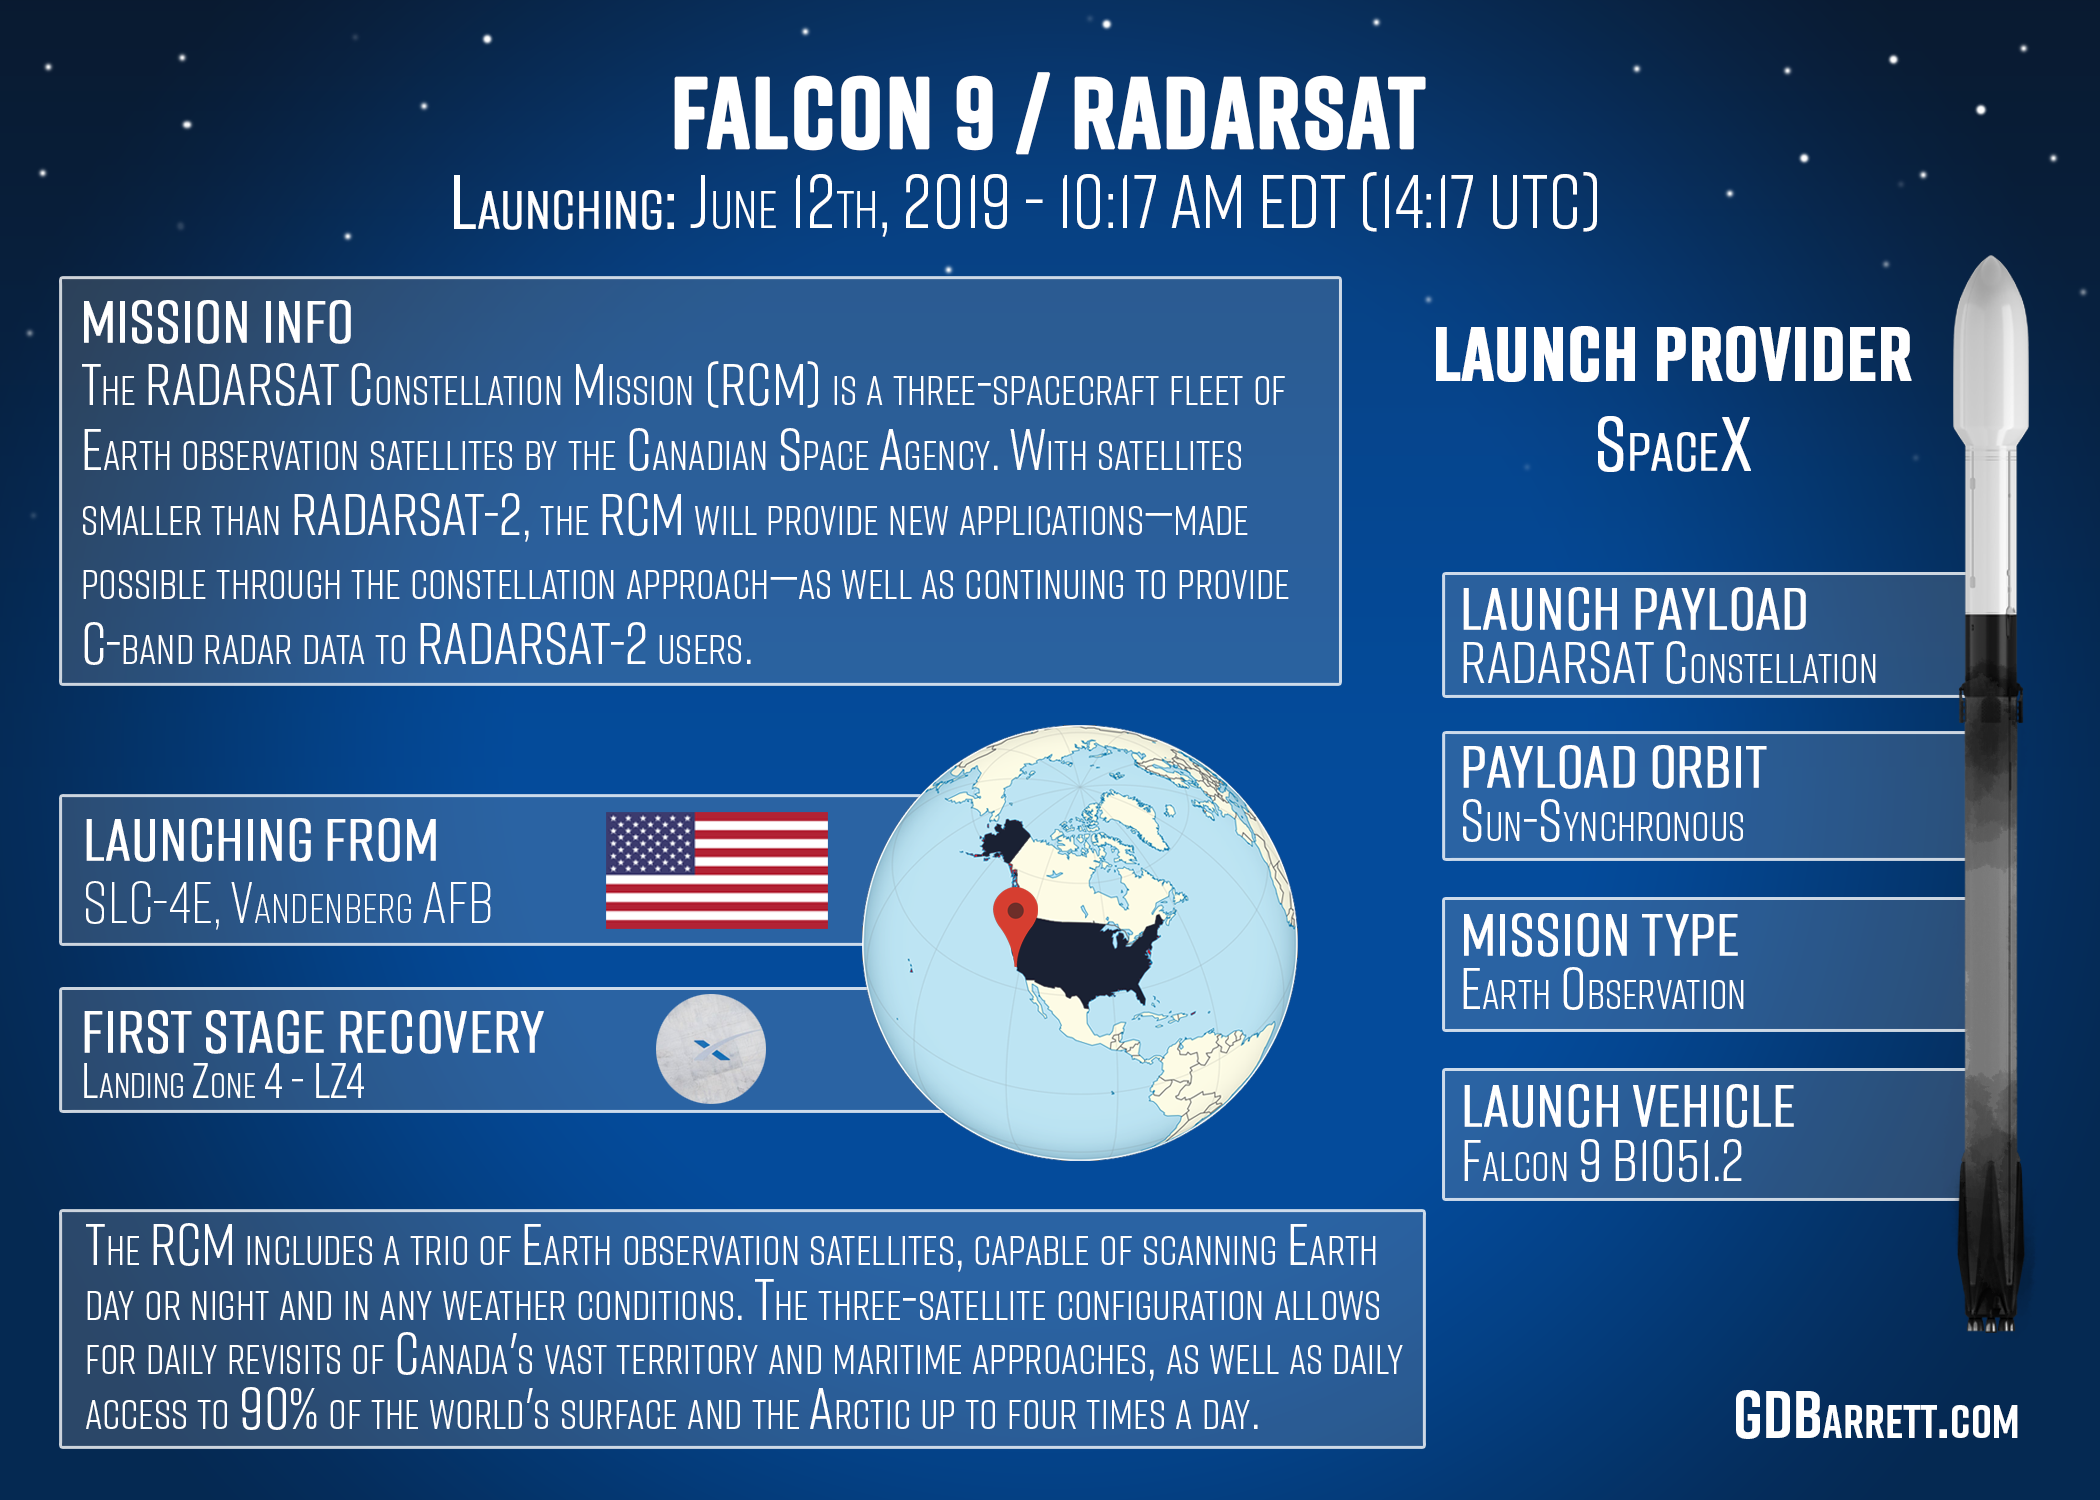 Space X Falcon 9 - RADARSAT